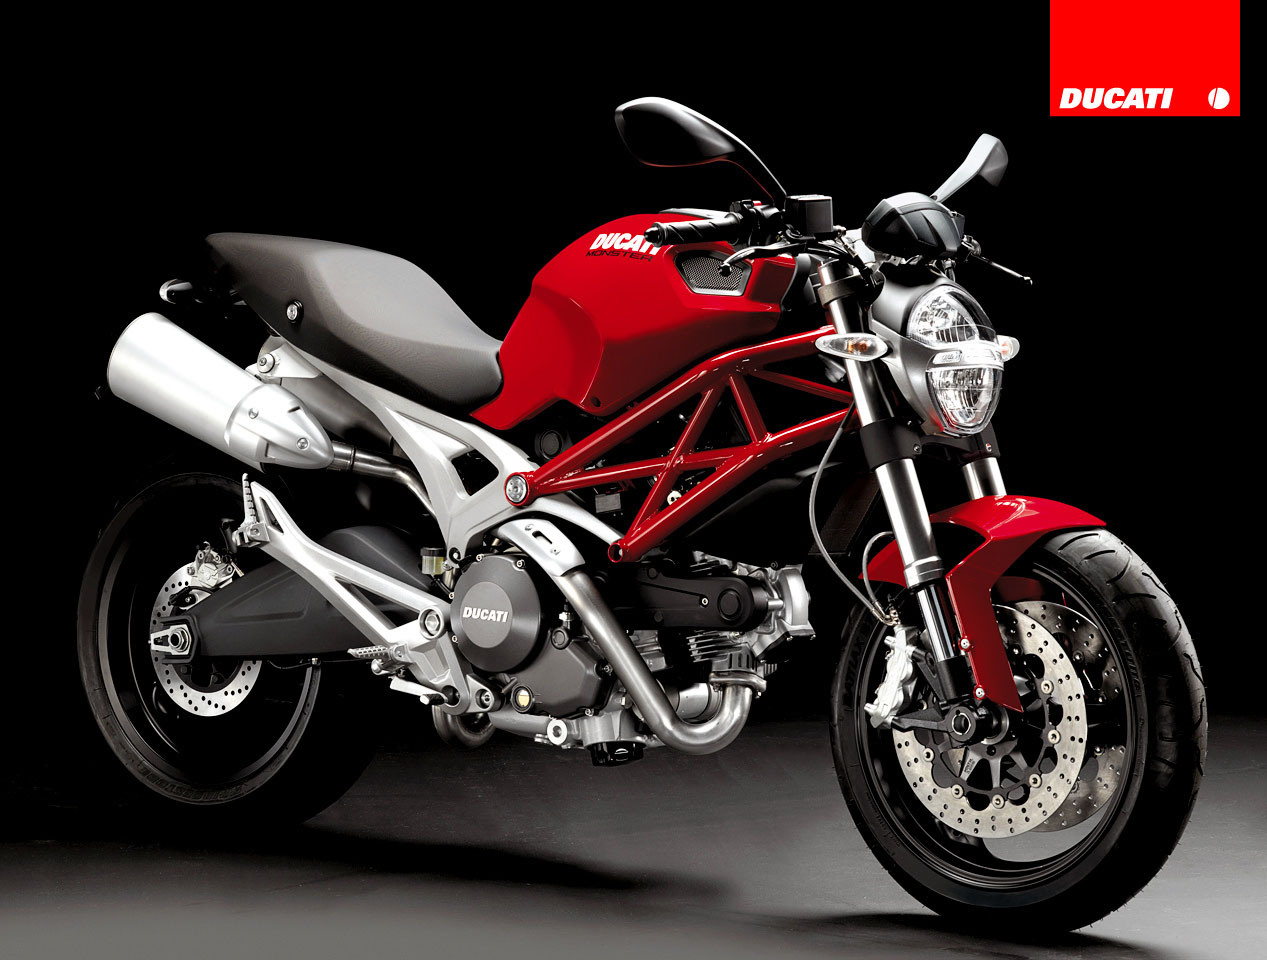 ducati monster3 Ducati Monsters vs Hot Bikini Models